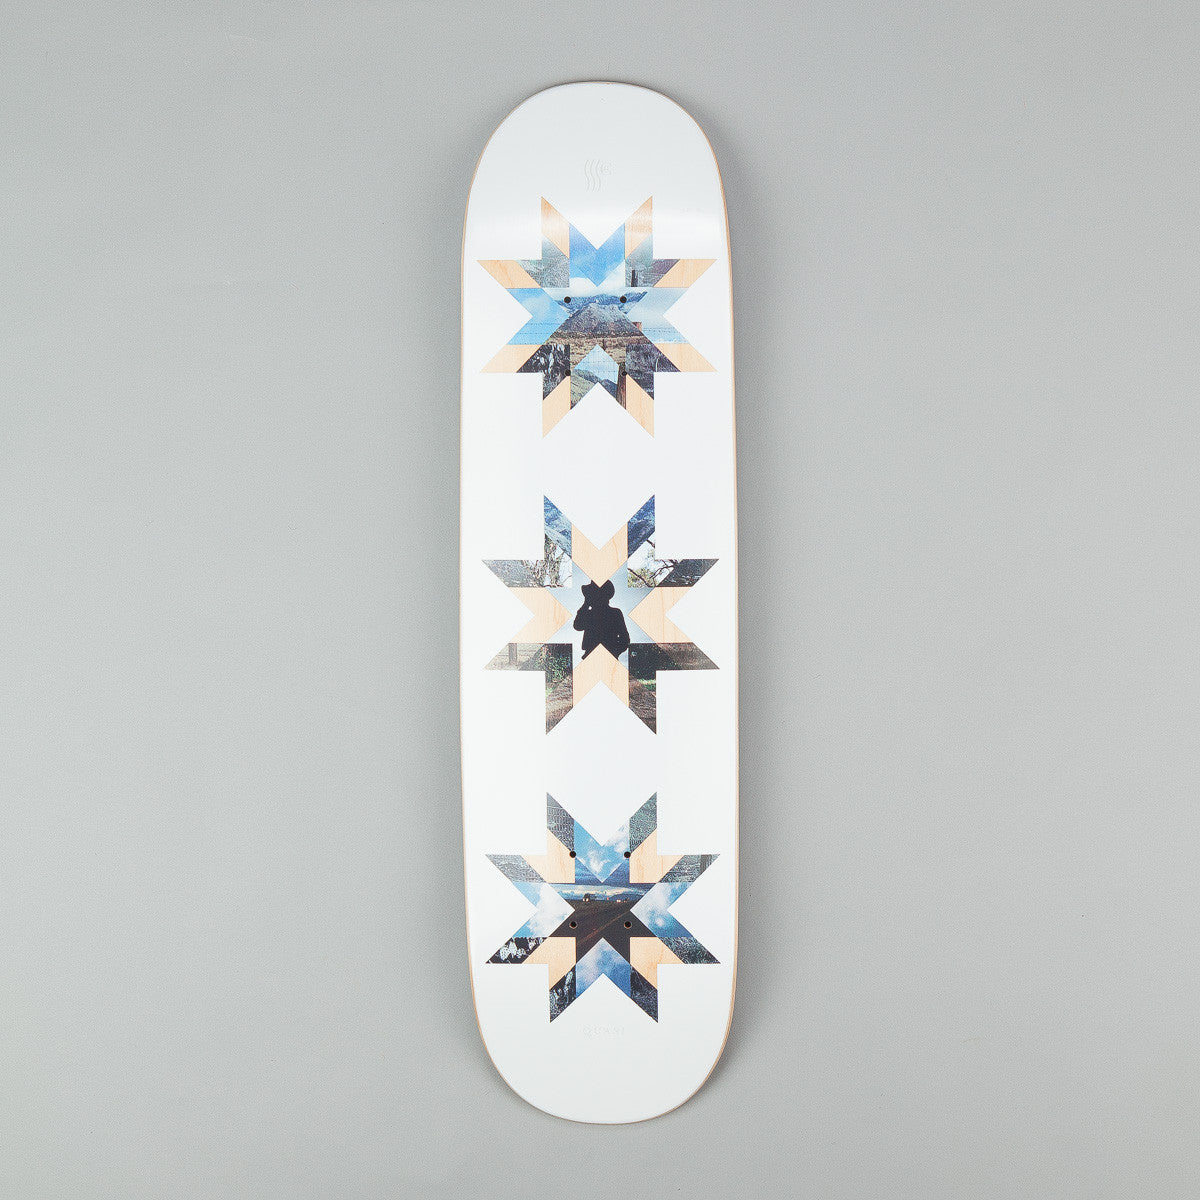 Quasi Skateboards Crockett 'Quilt' [One] Deck - Natural 8.125